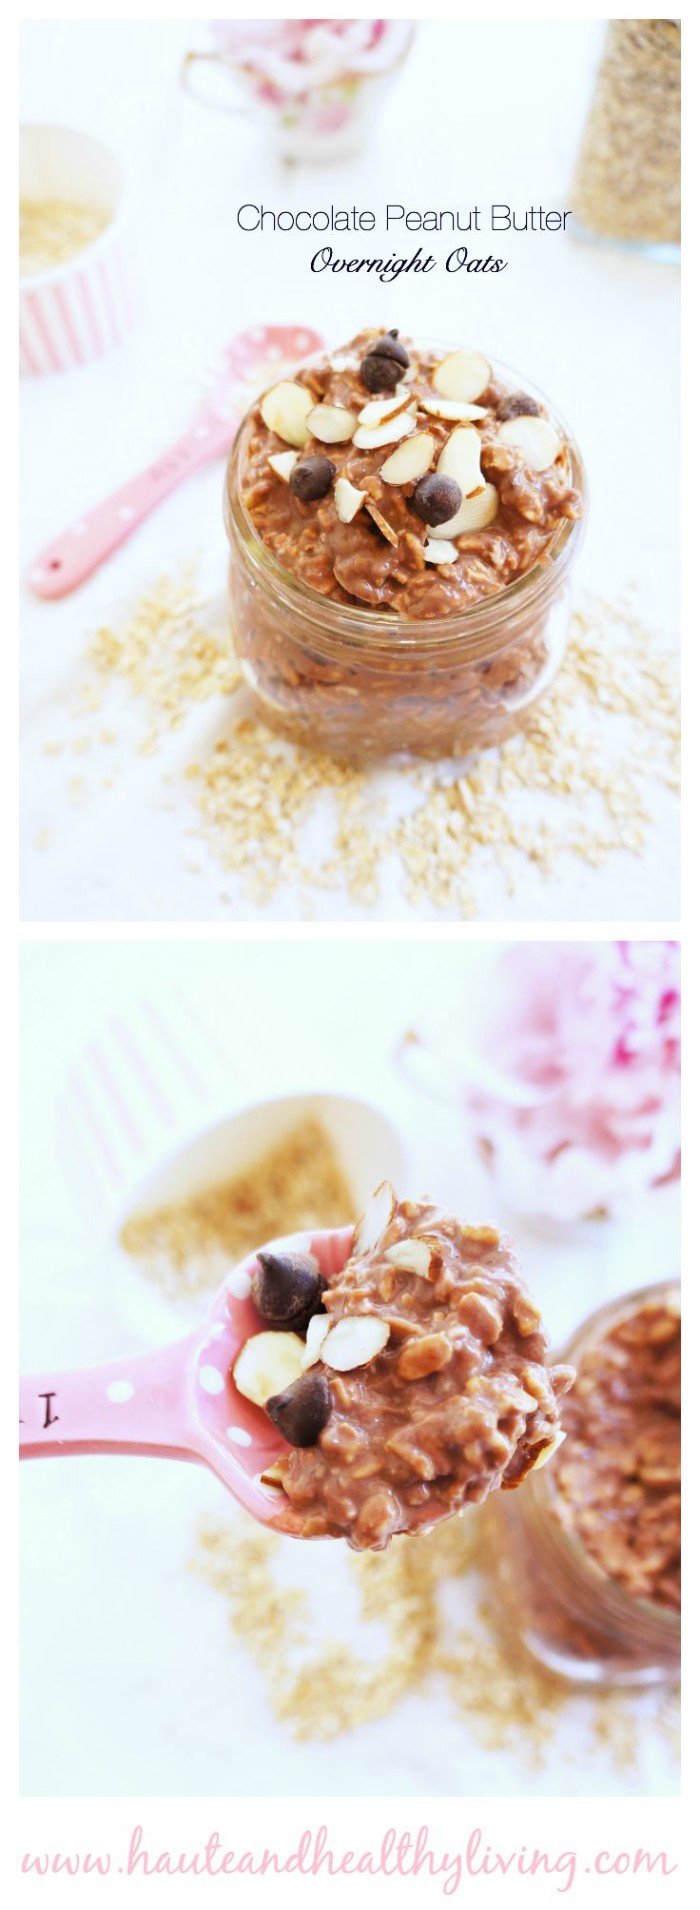 Chocolate PB Overnight Oats | Haute & Healthy Living